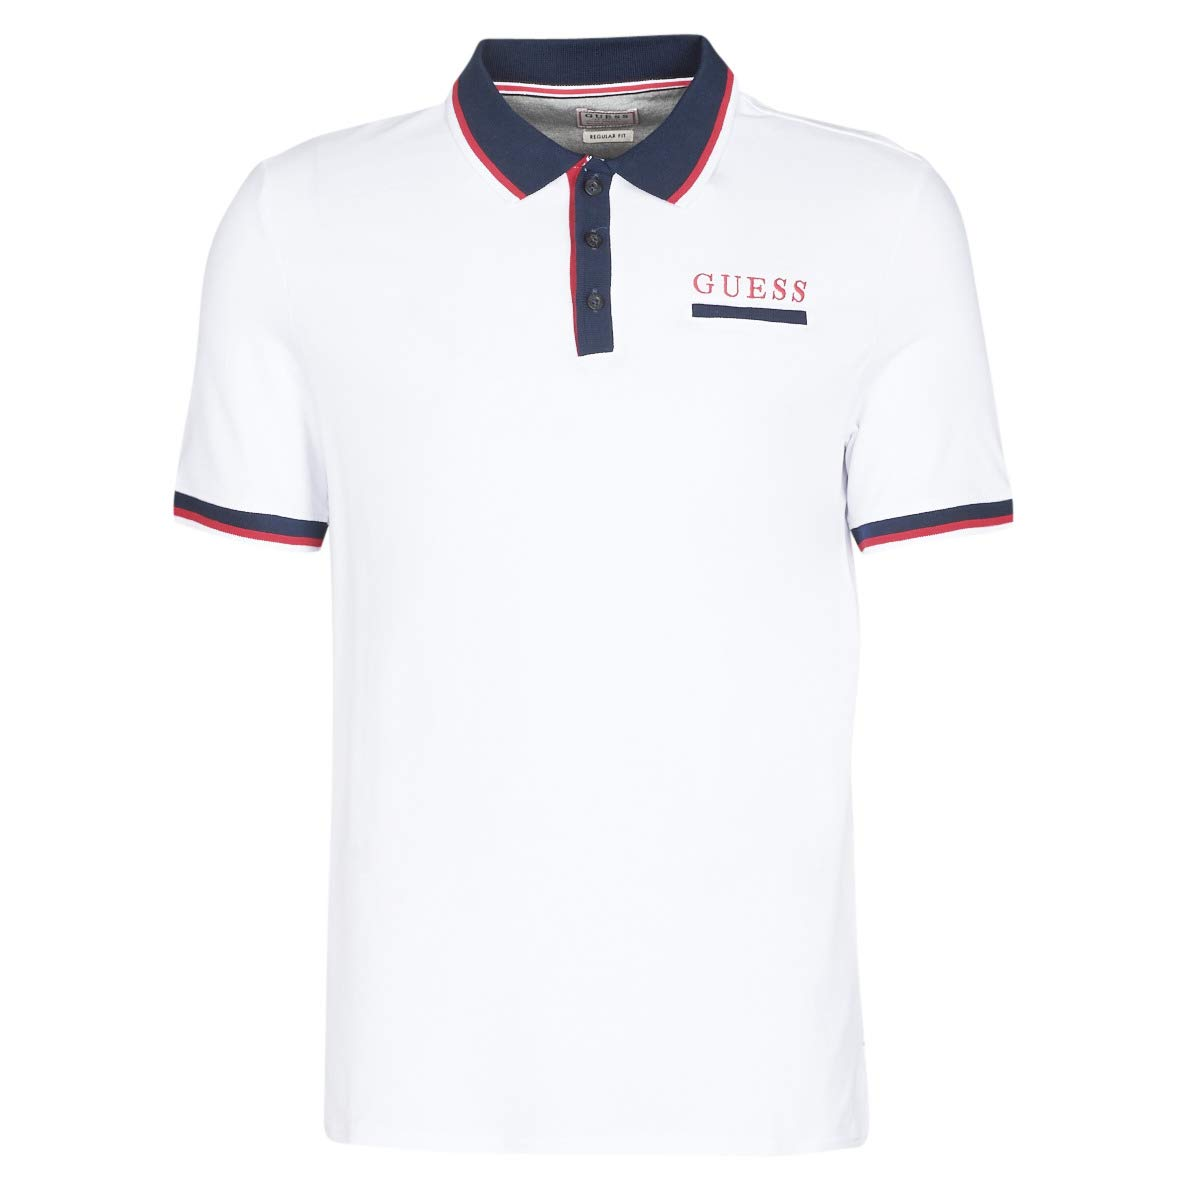 GUESS Les SS Polo Tops y Camisetas Hommes Blanco - XS - Polos ...